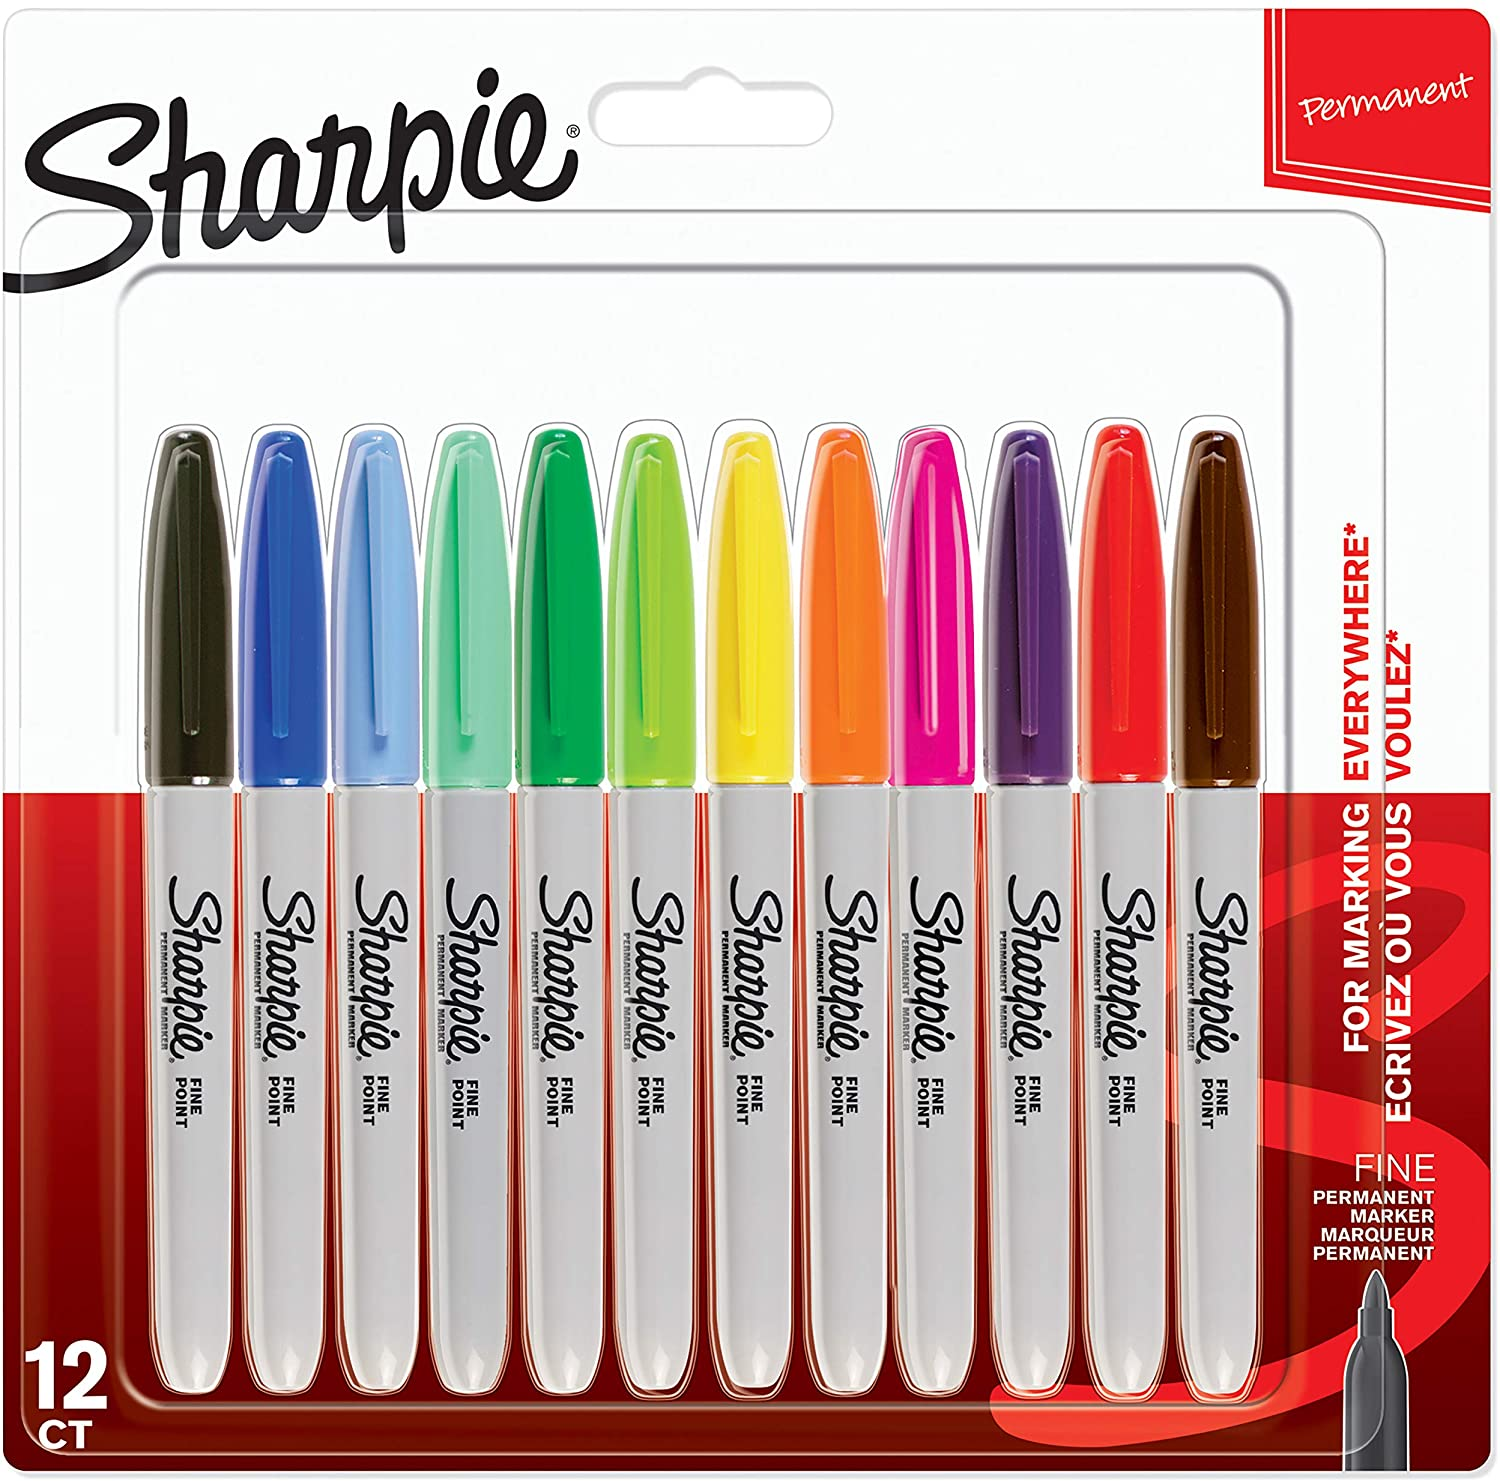 1 BONUS DUAL TIP NEW 12 PACK ASSORTED COLORS SHARPIE FINE PERMANENT MARKERS